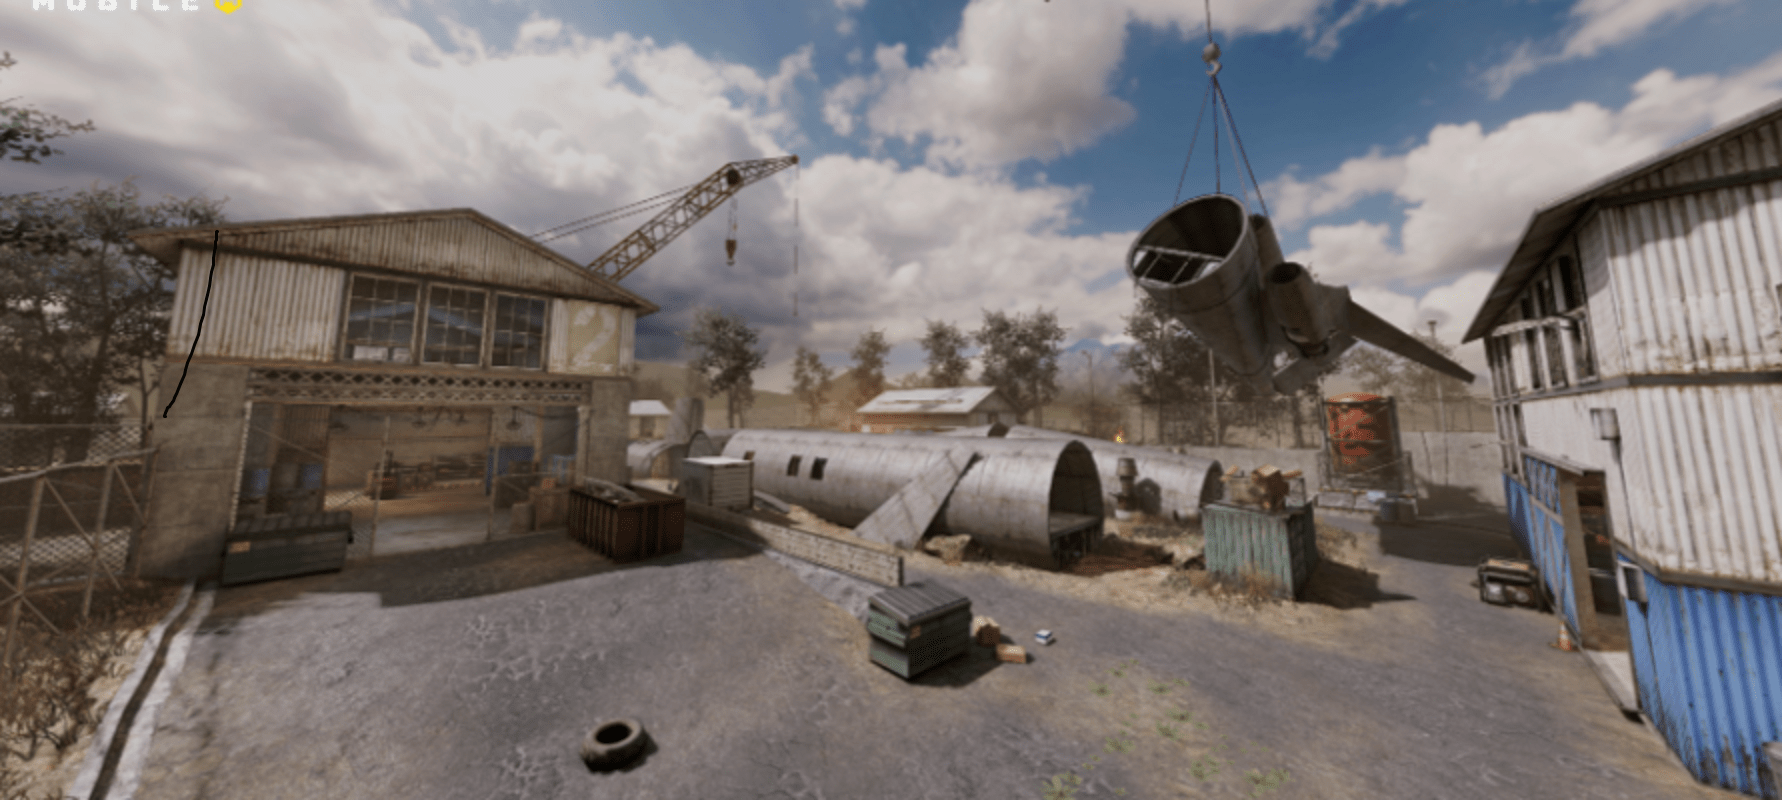 Call Of Duty: Mobile Will Be Getting The Old School Map 'Scrapyard' In Season 3